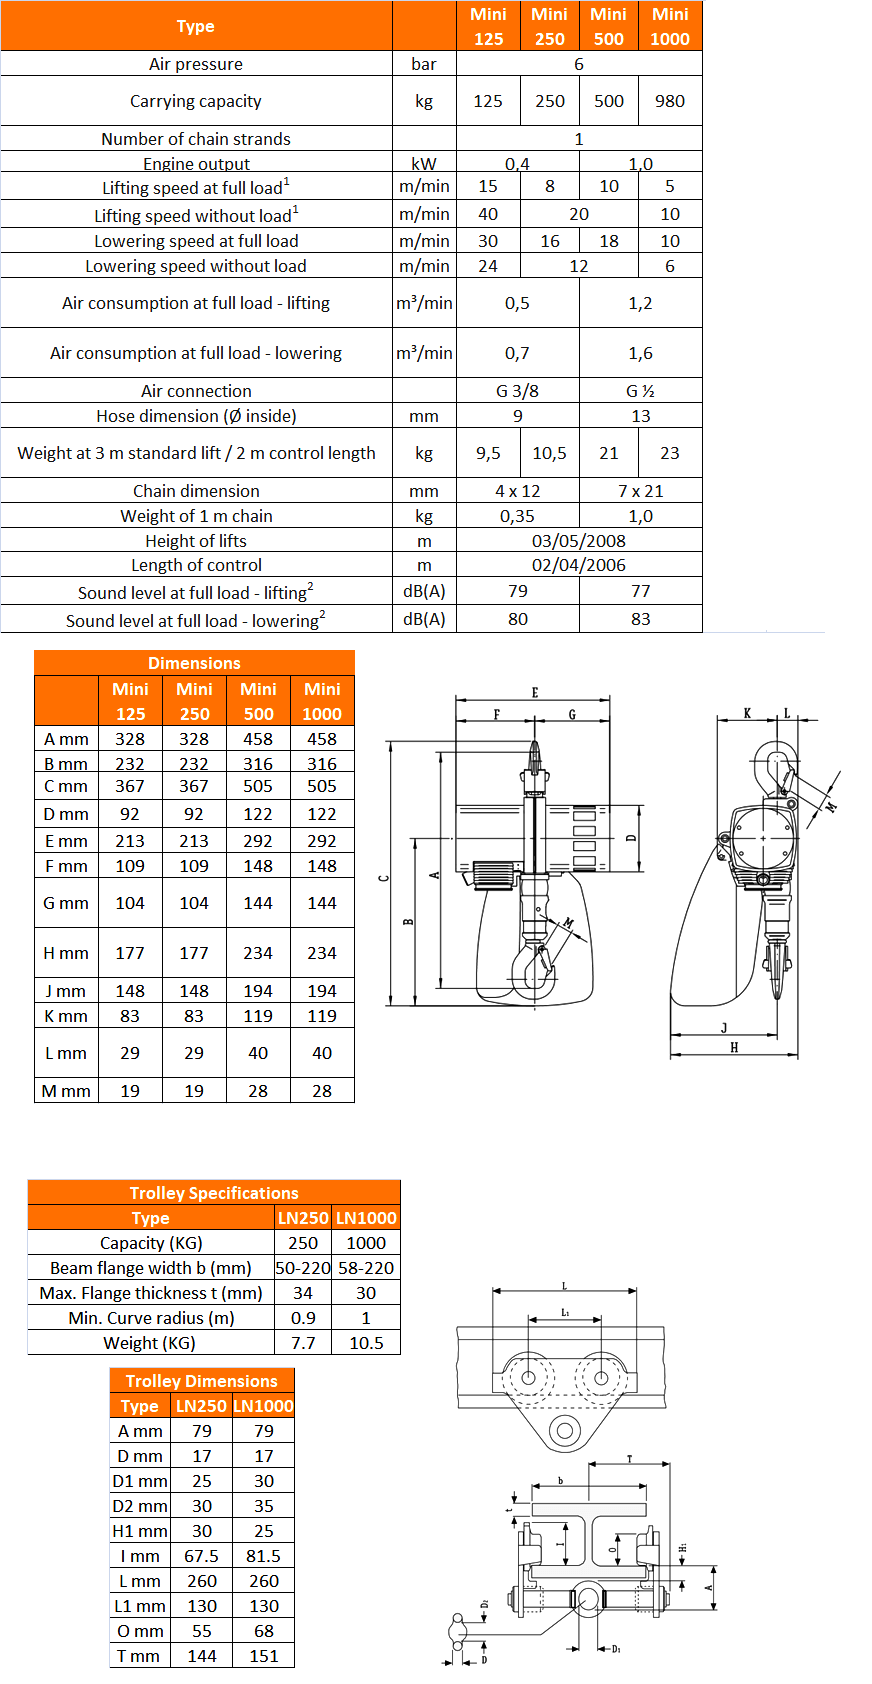 jdn mini air hoist specifications